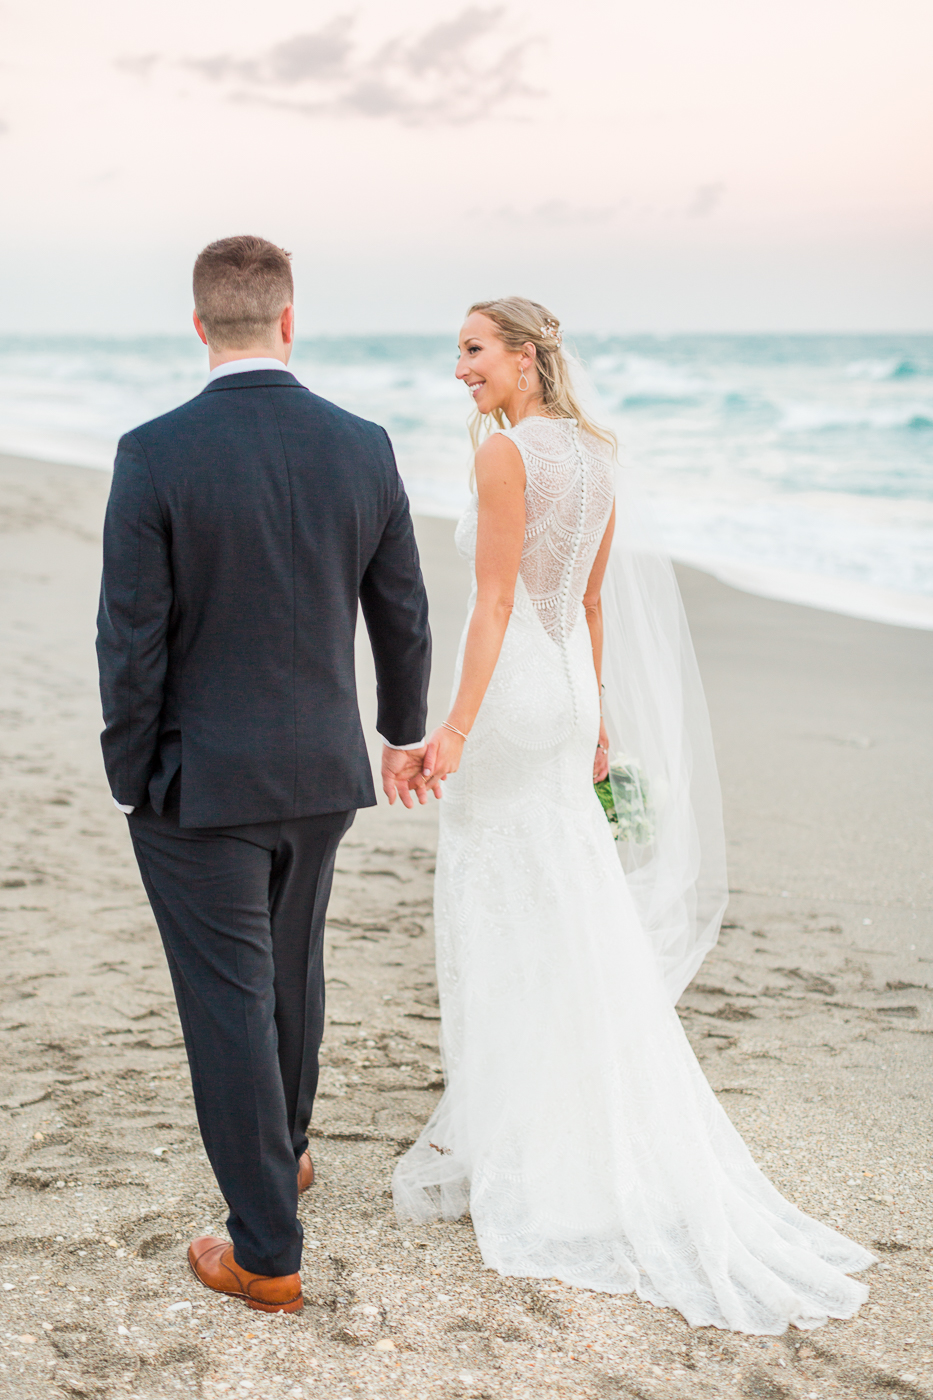 Laurabeth + Kevin - JUPITER BEACH, FLORIDA